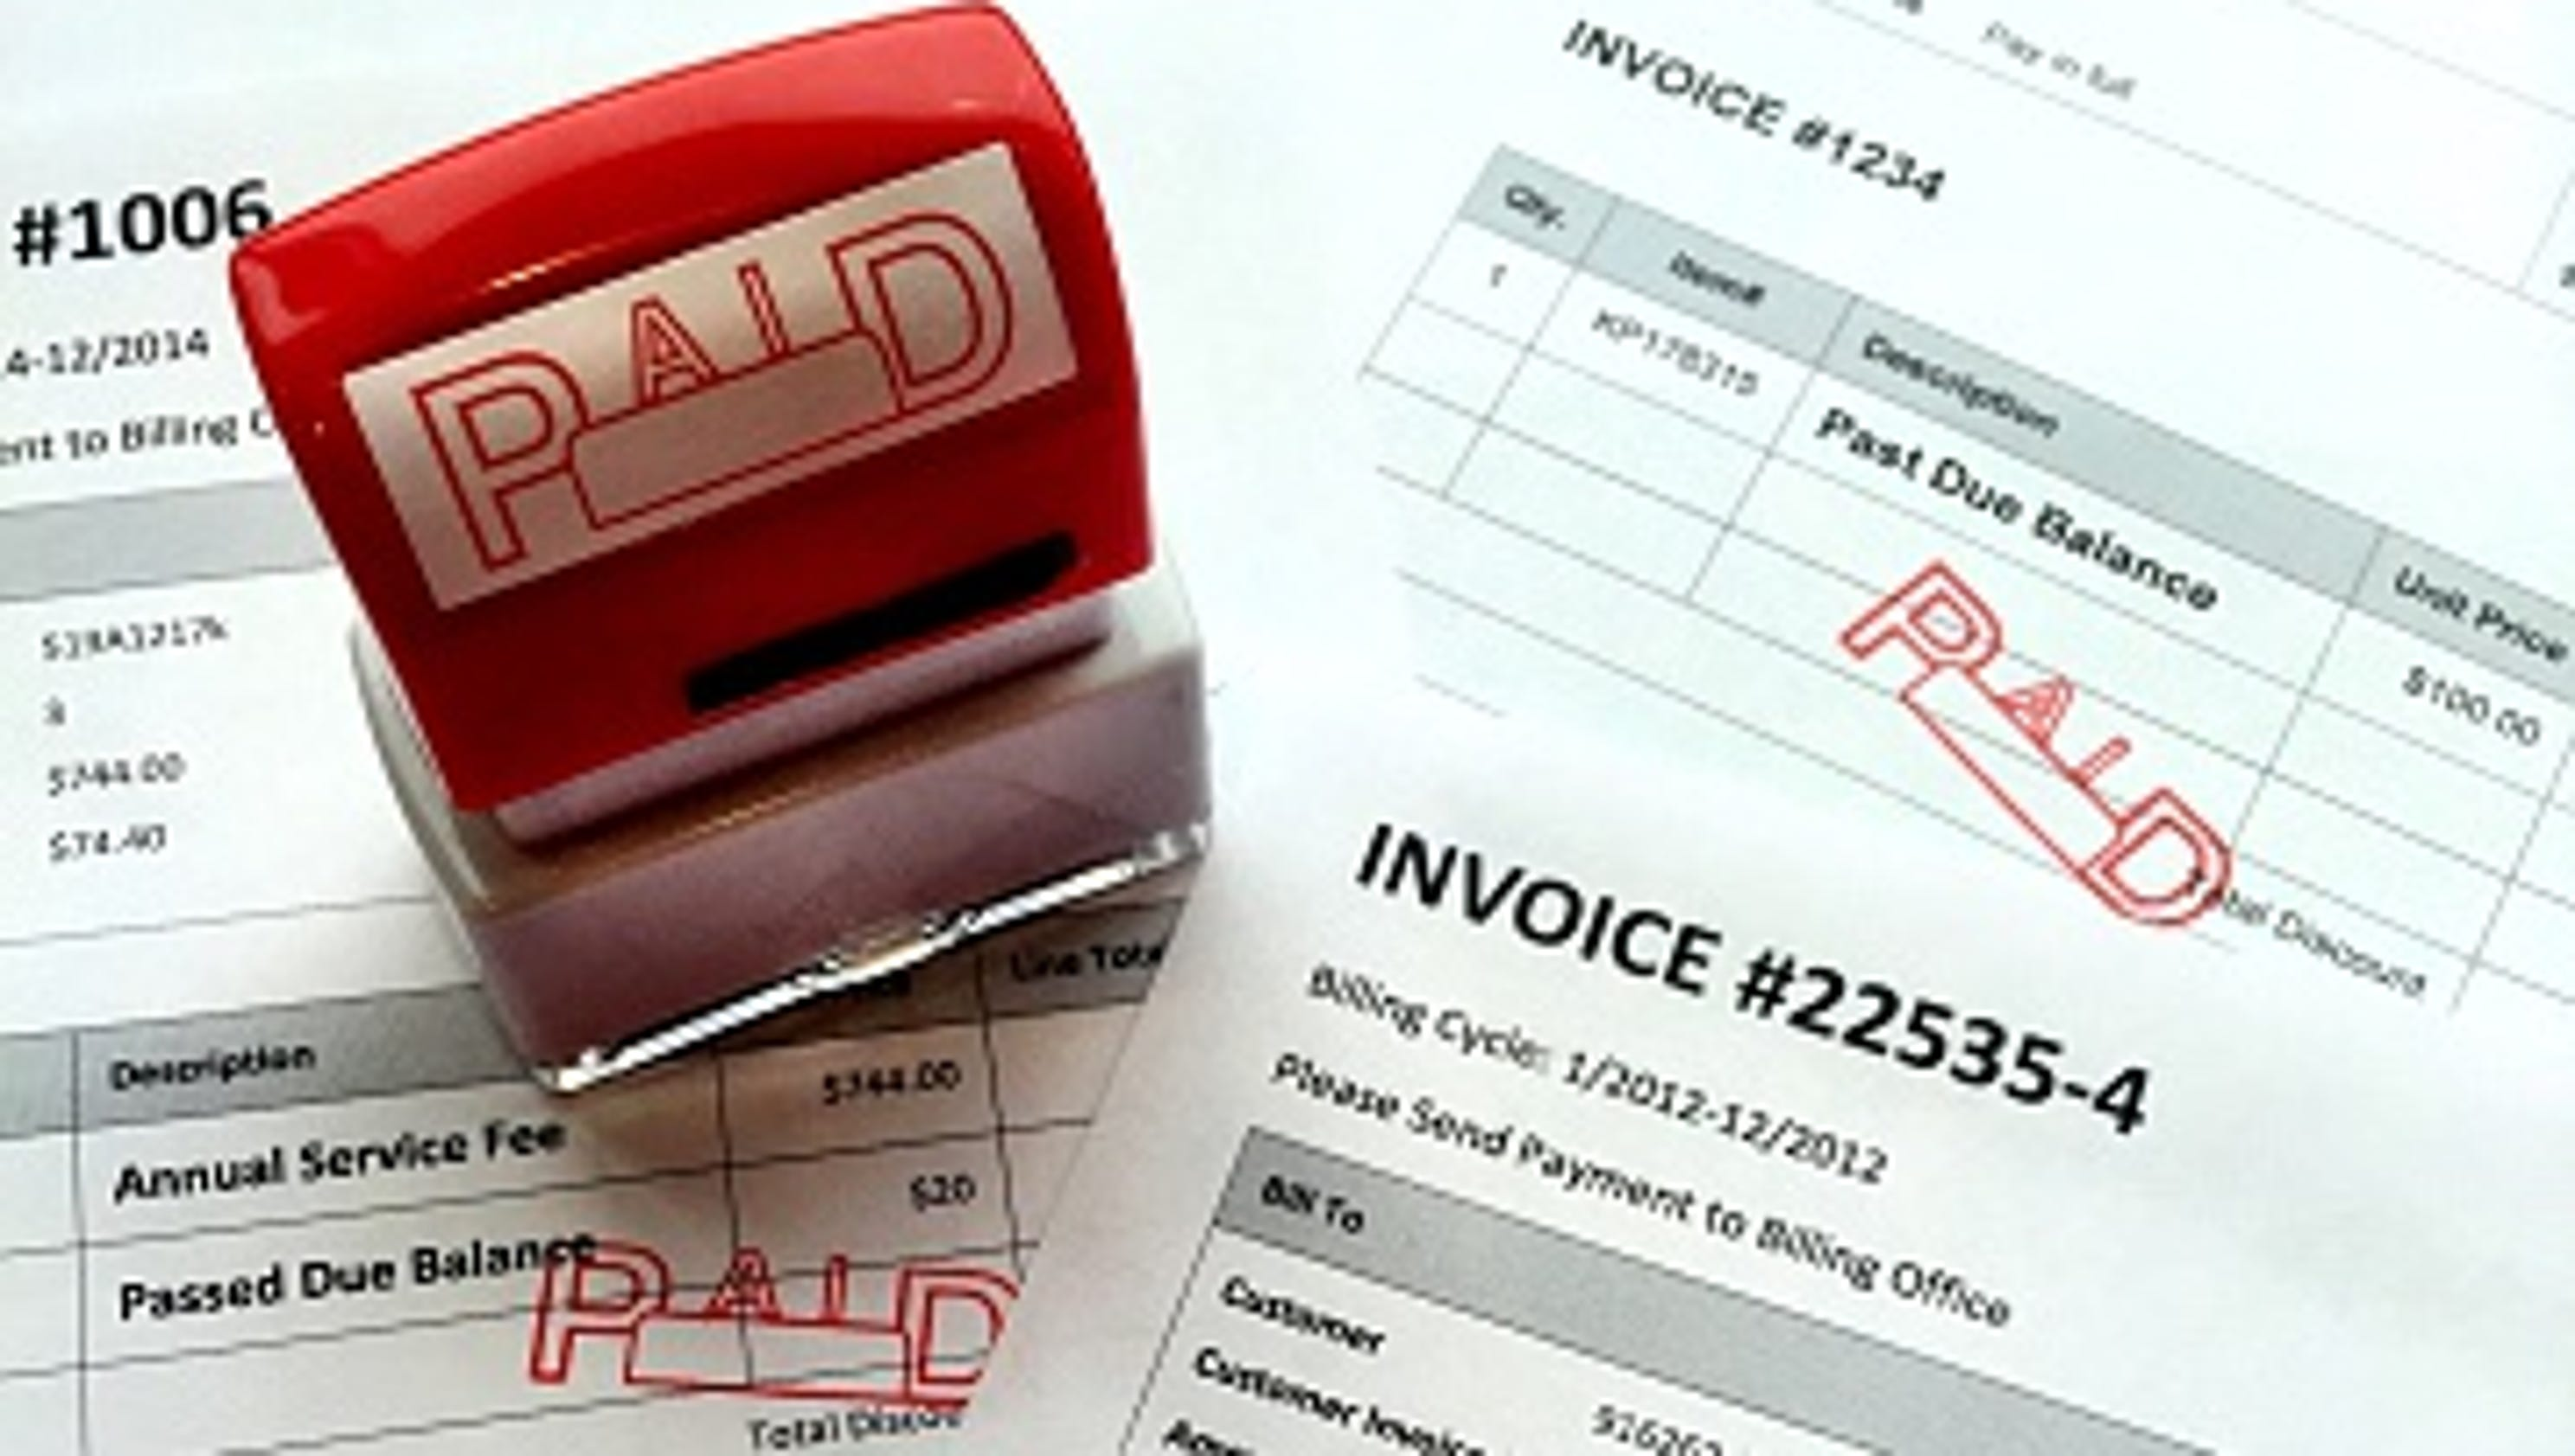 Printer Glitch Causes Hazlet Sewer Bill Issues - Tophatter com invoices